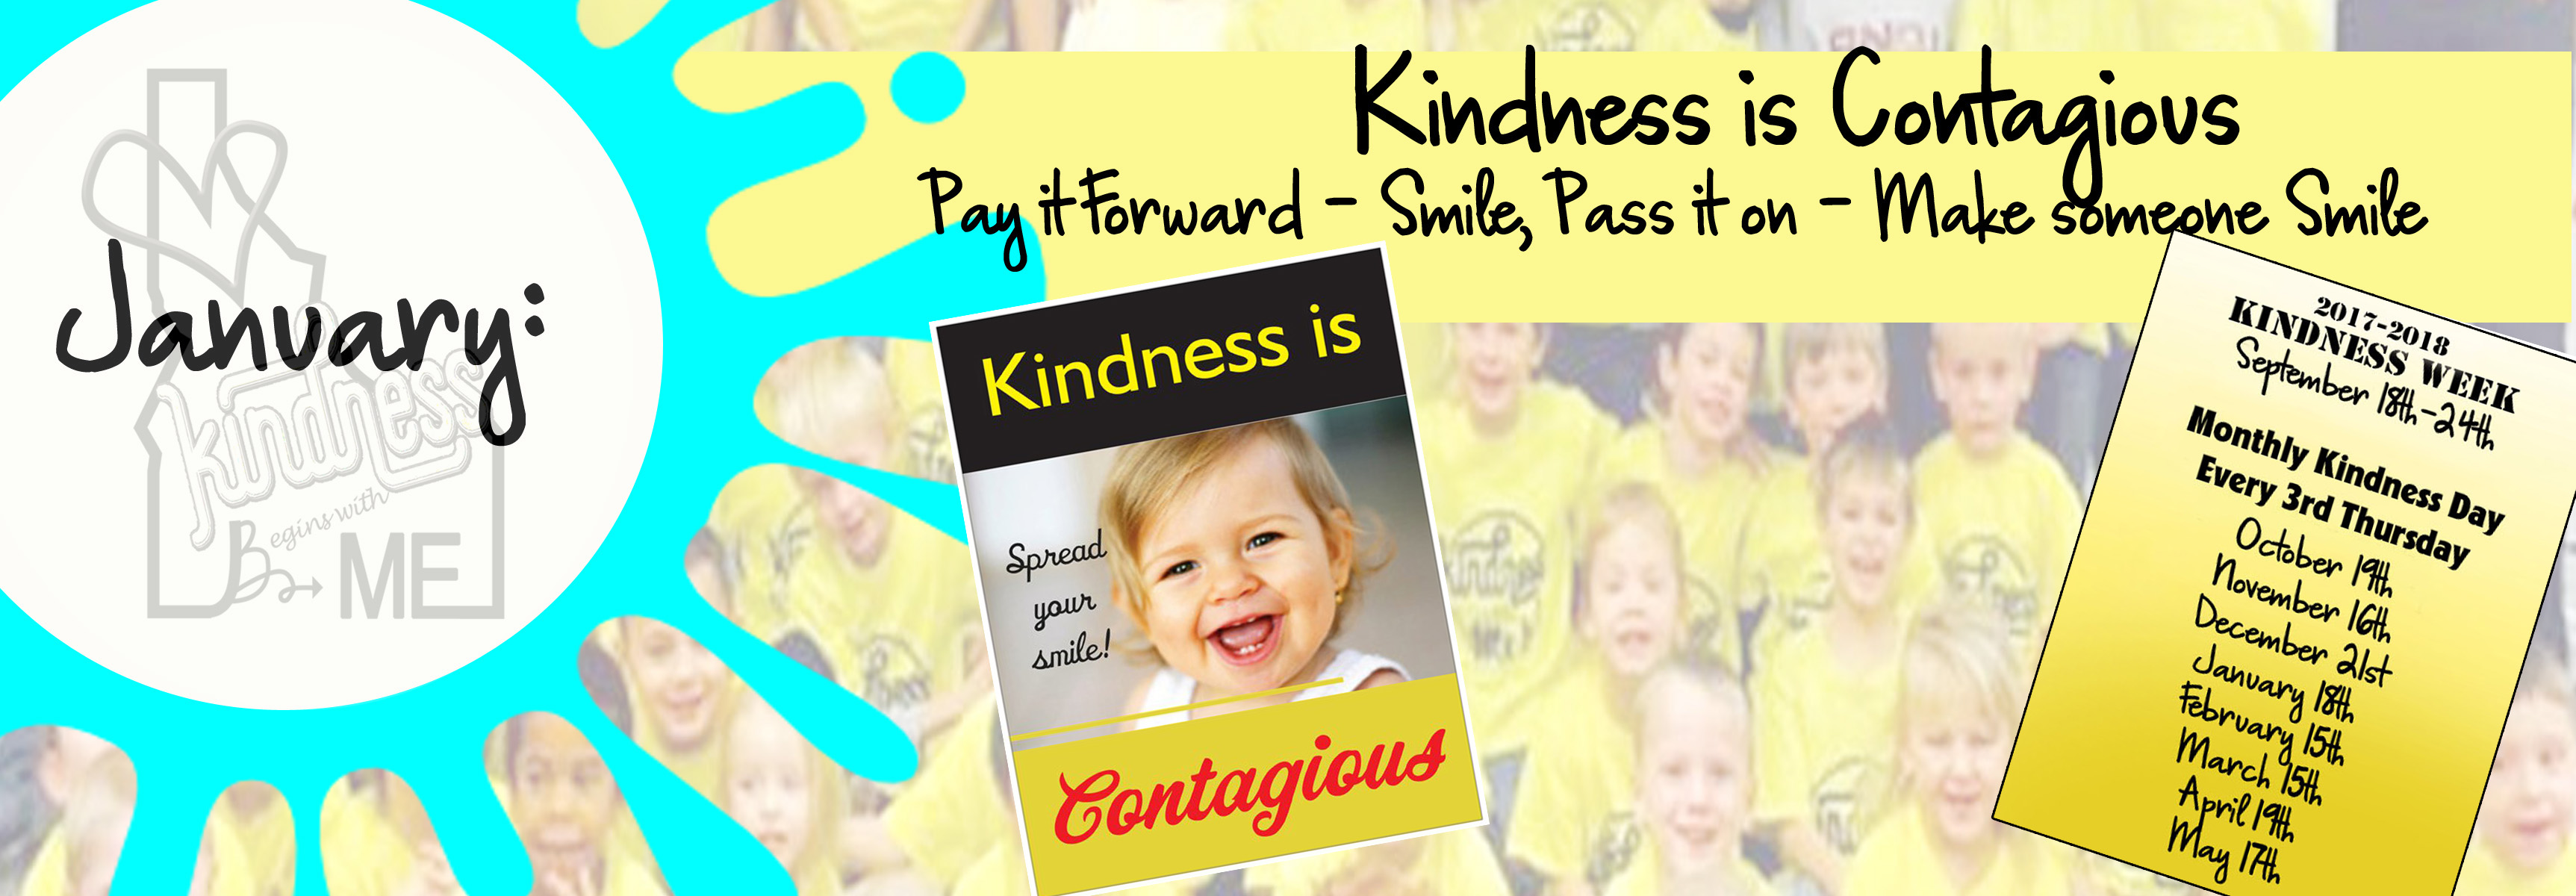 Tomorrow is January's Kindness Day  – Thursday, January 18th, 2018 – Kindness is Contagious